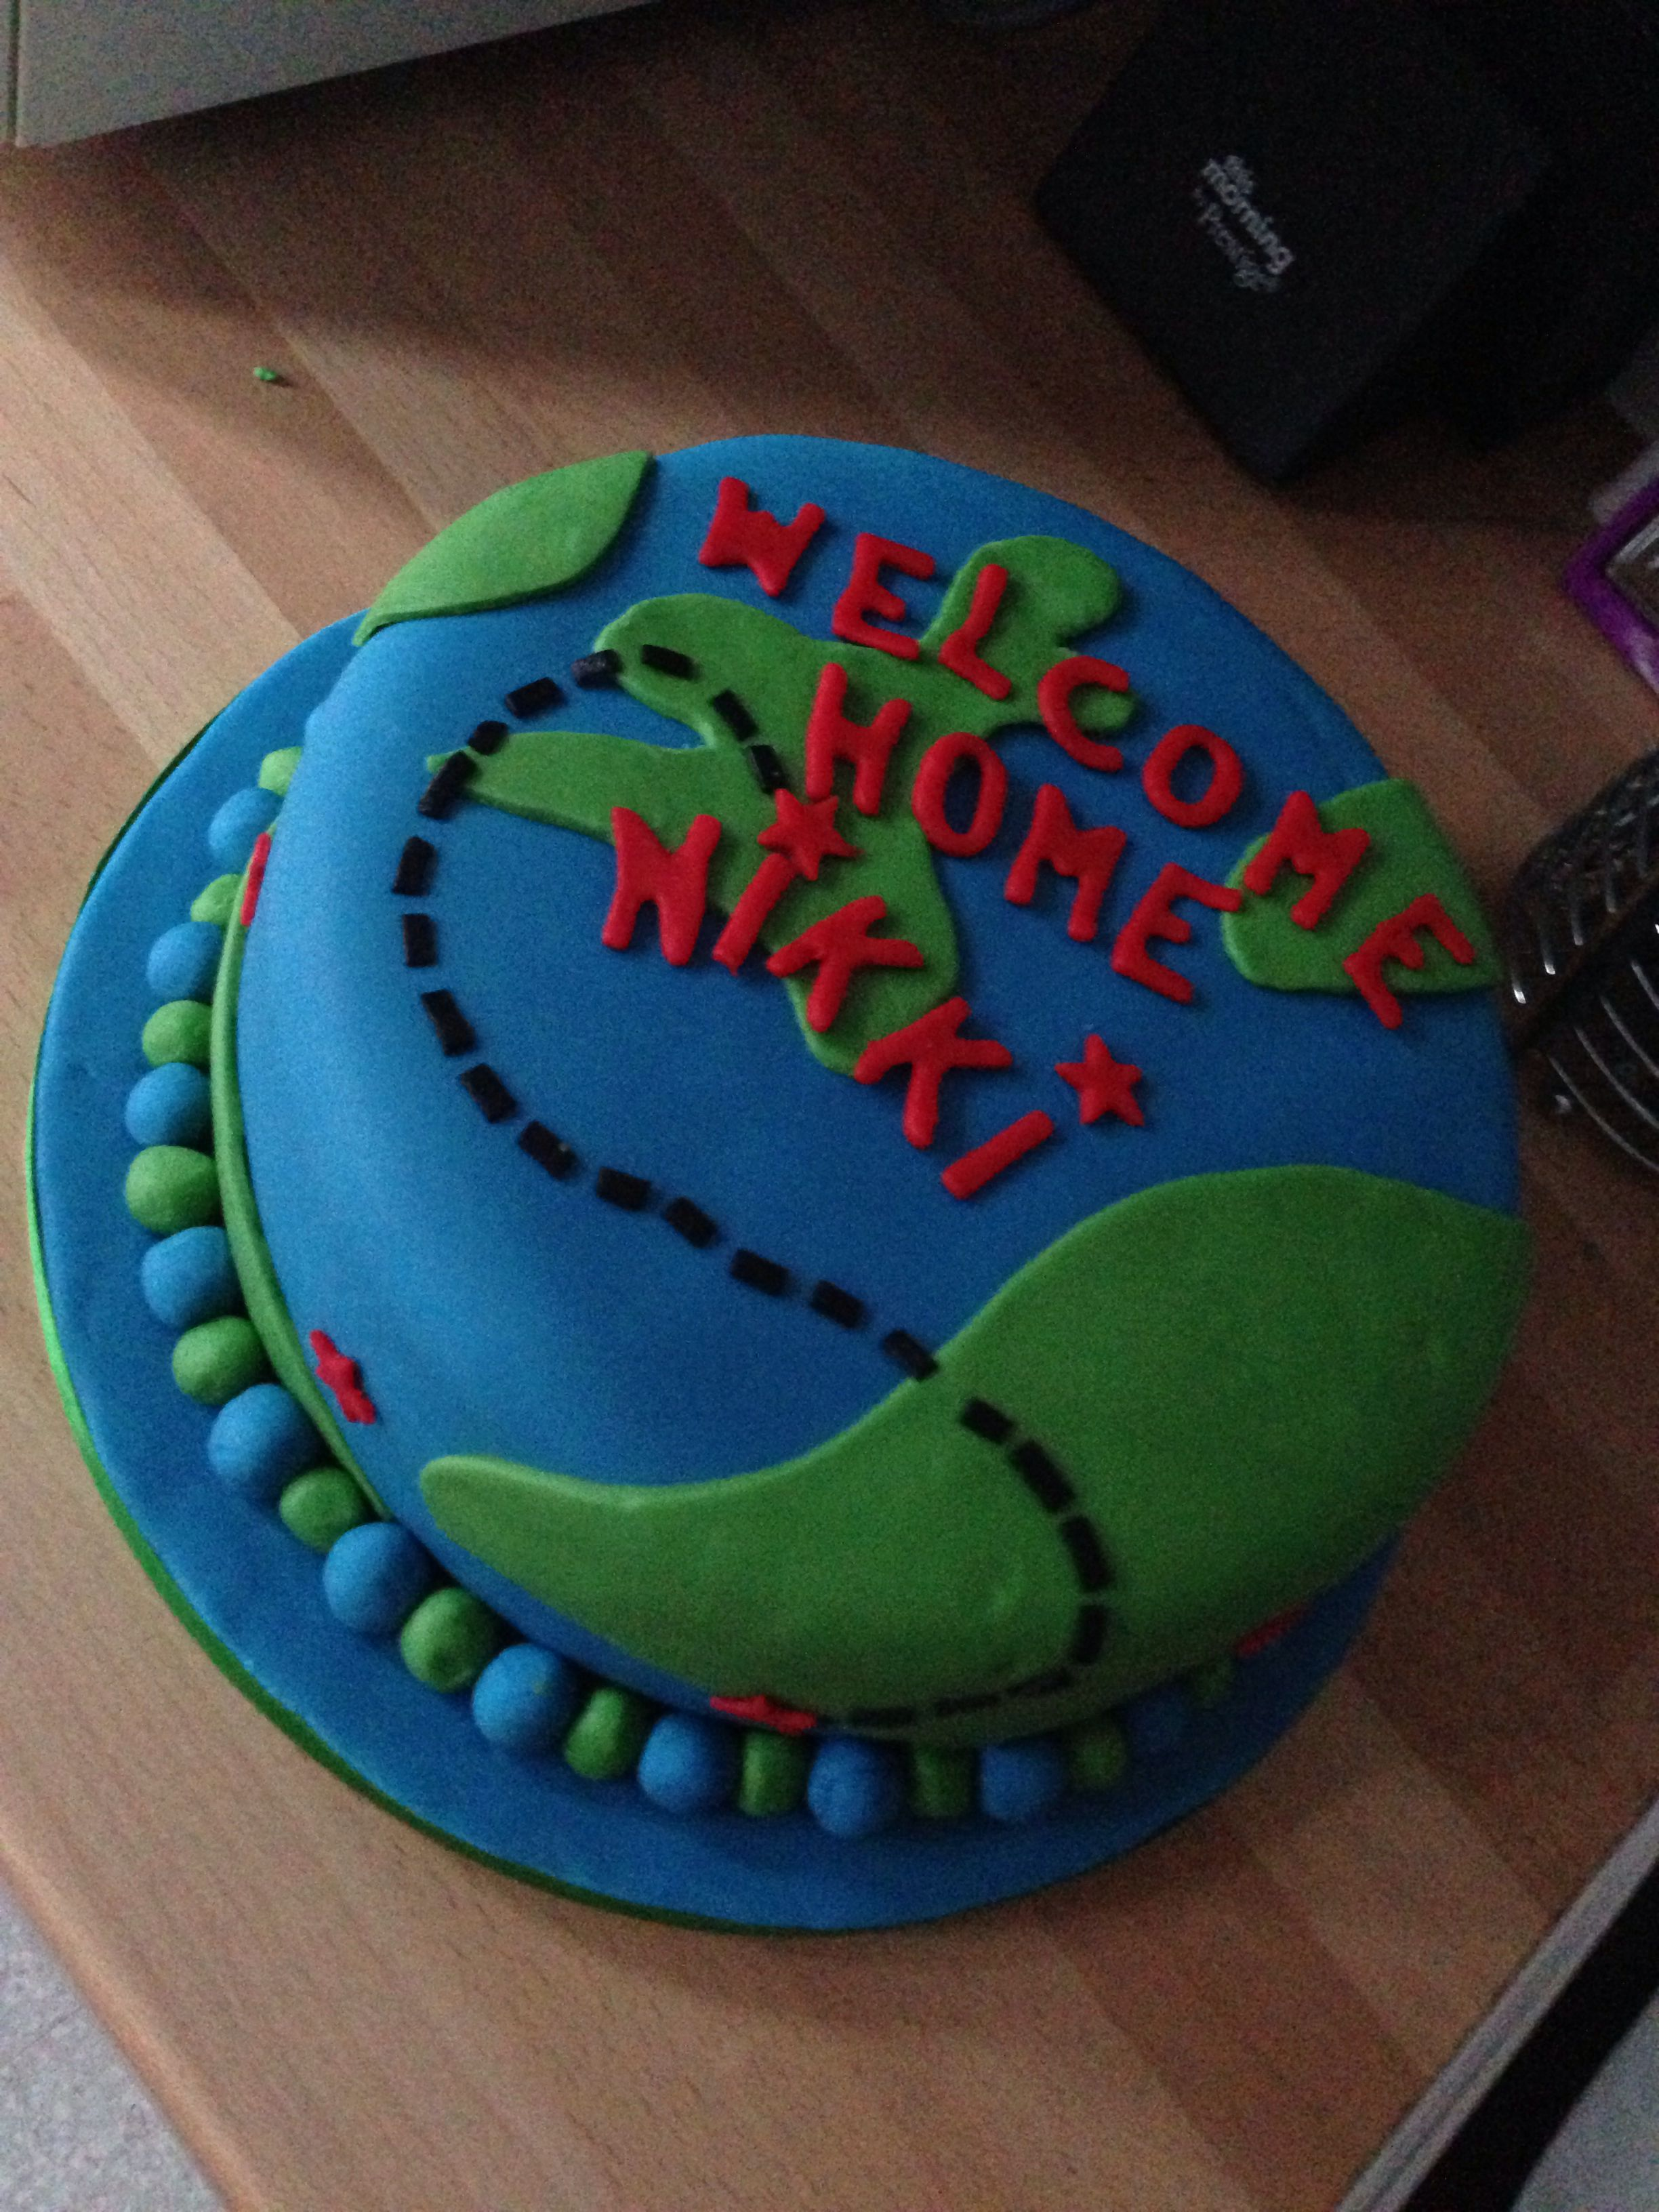 Welcome home cake cake decorating pinterest for Welcome home cake decorations